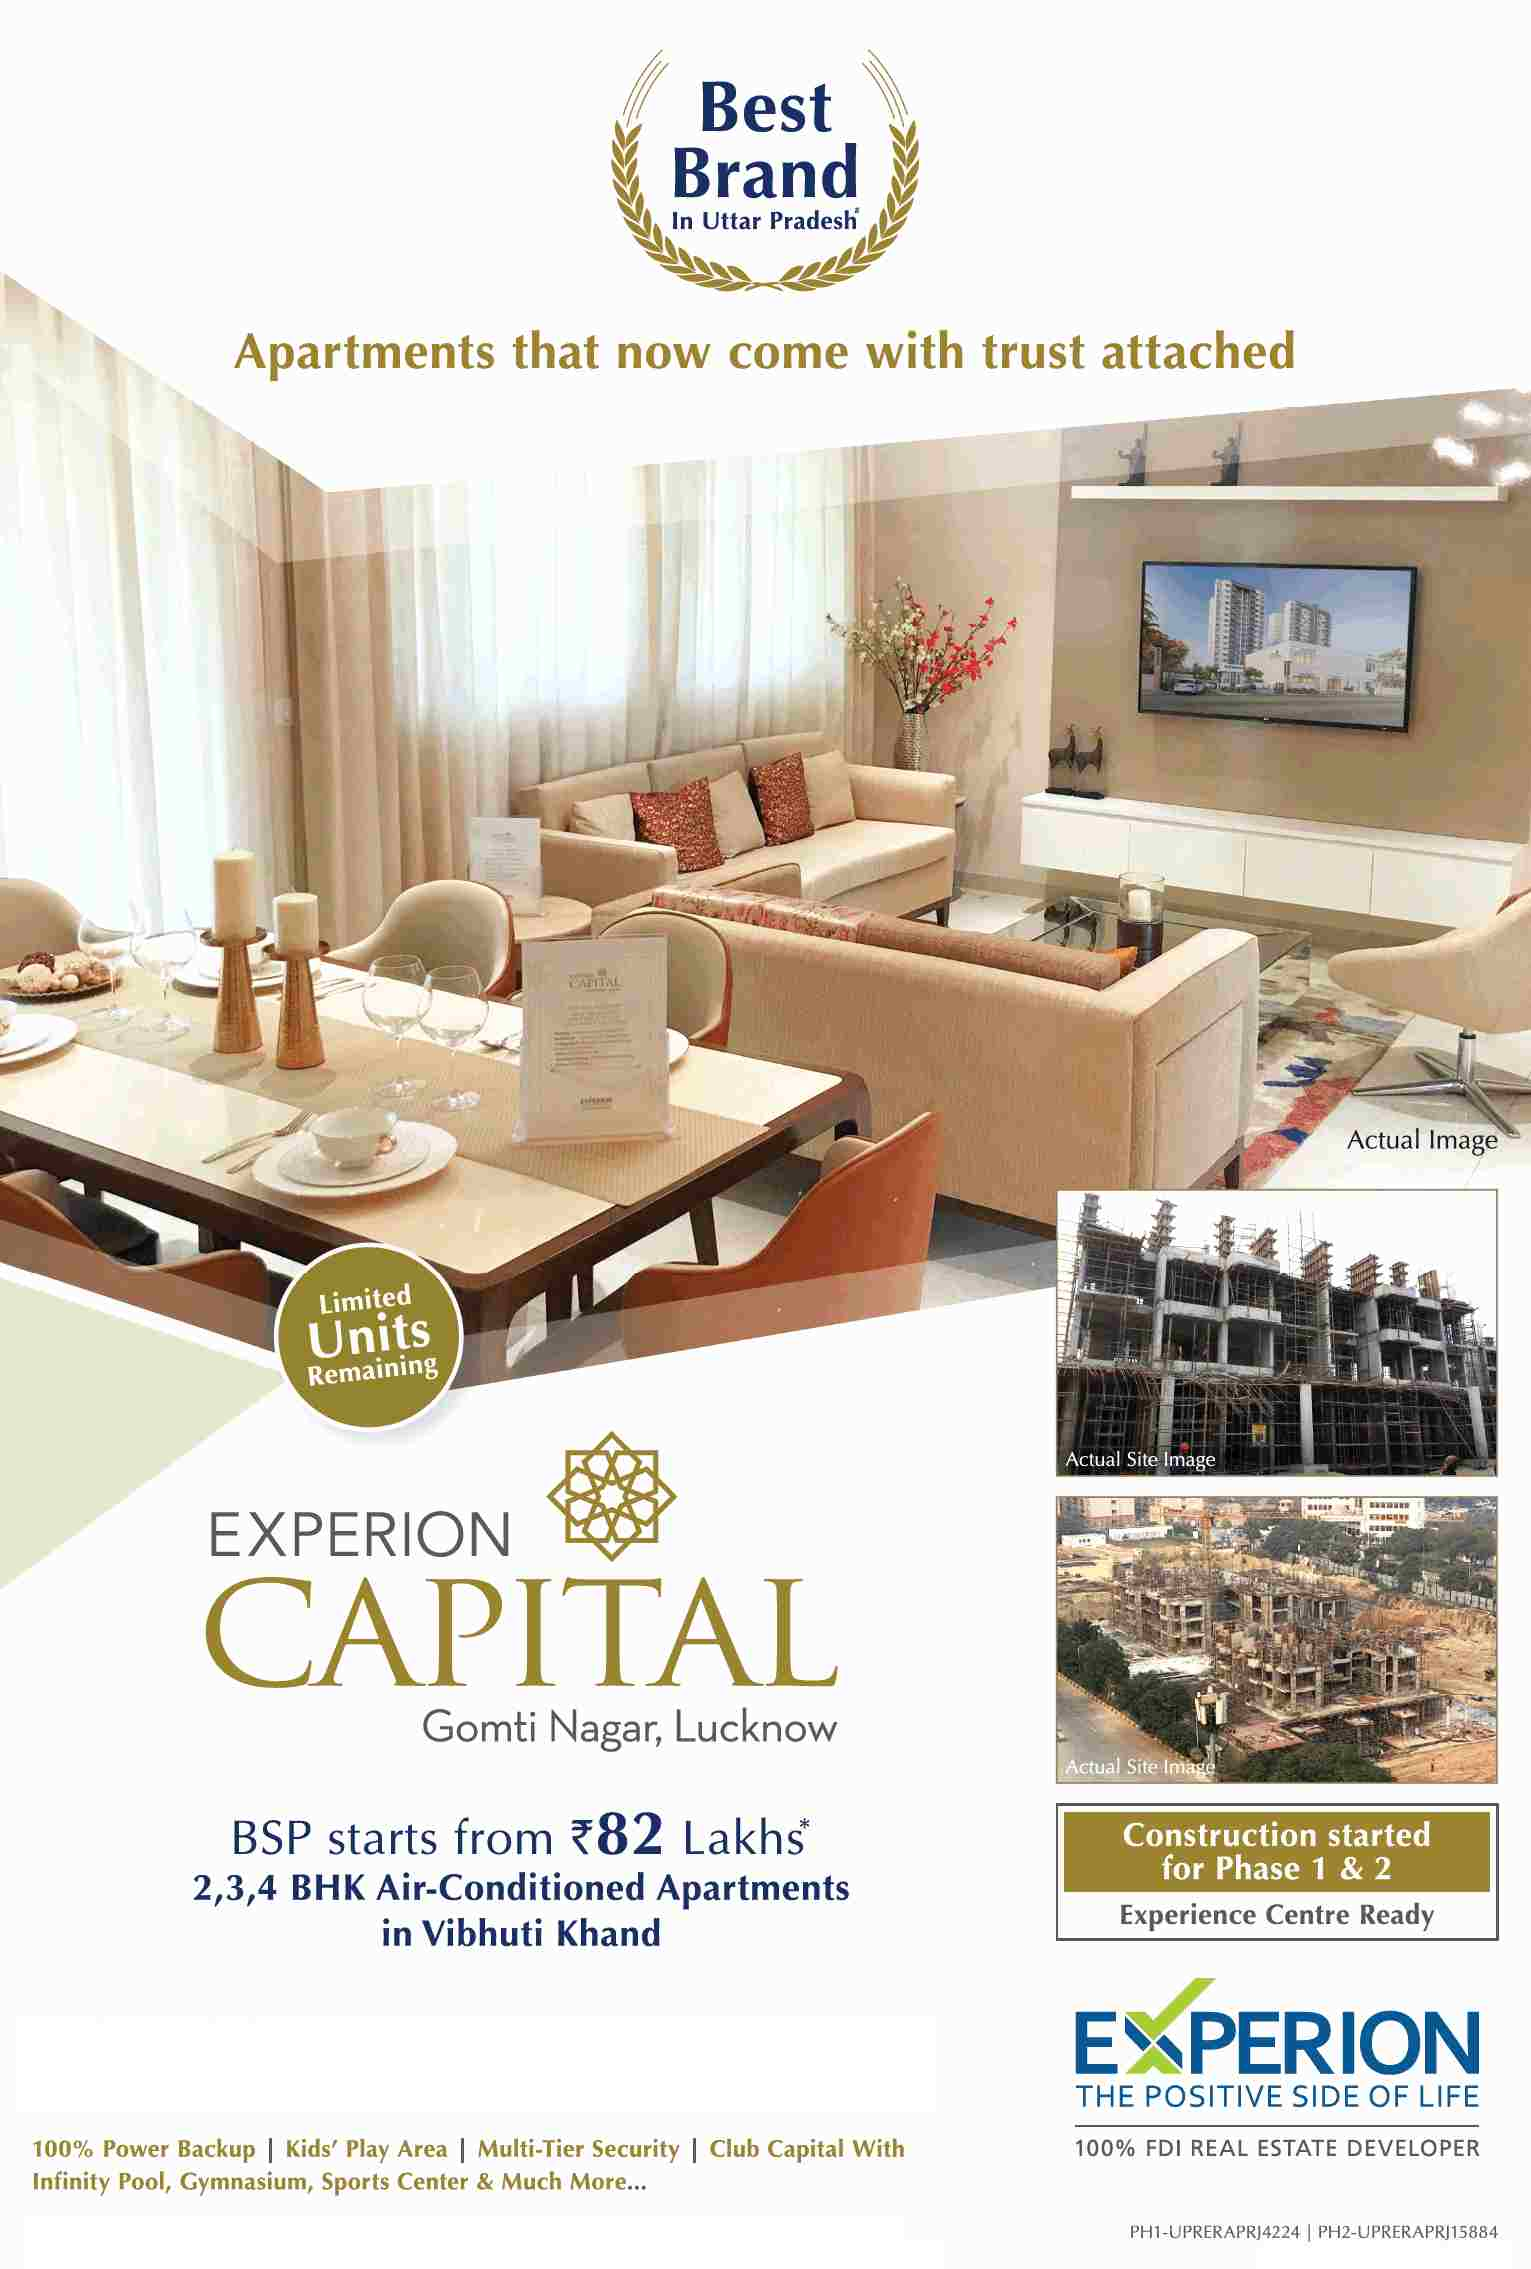 Book air conditioned apartments 82 Lakhs at Experion Capital in Lucknow